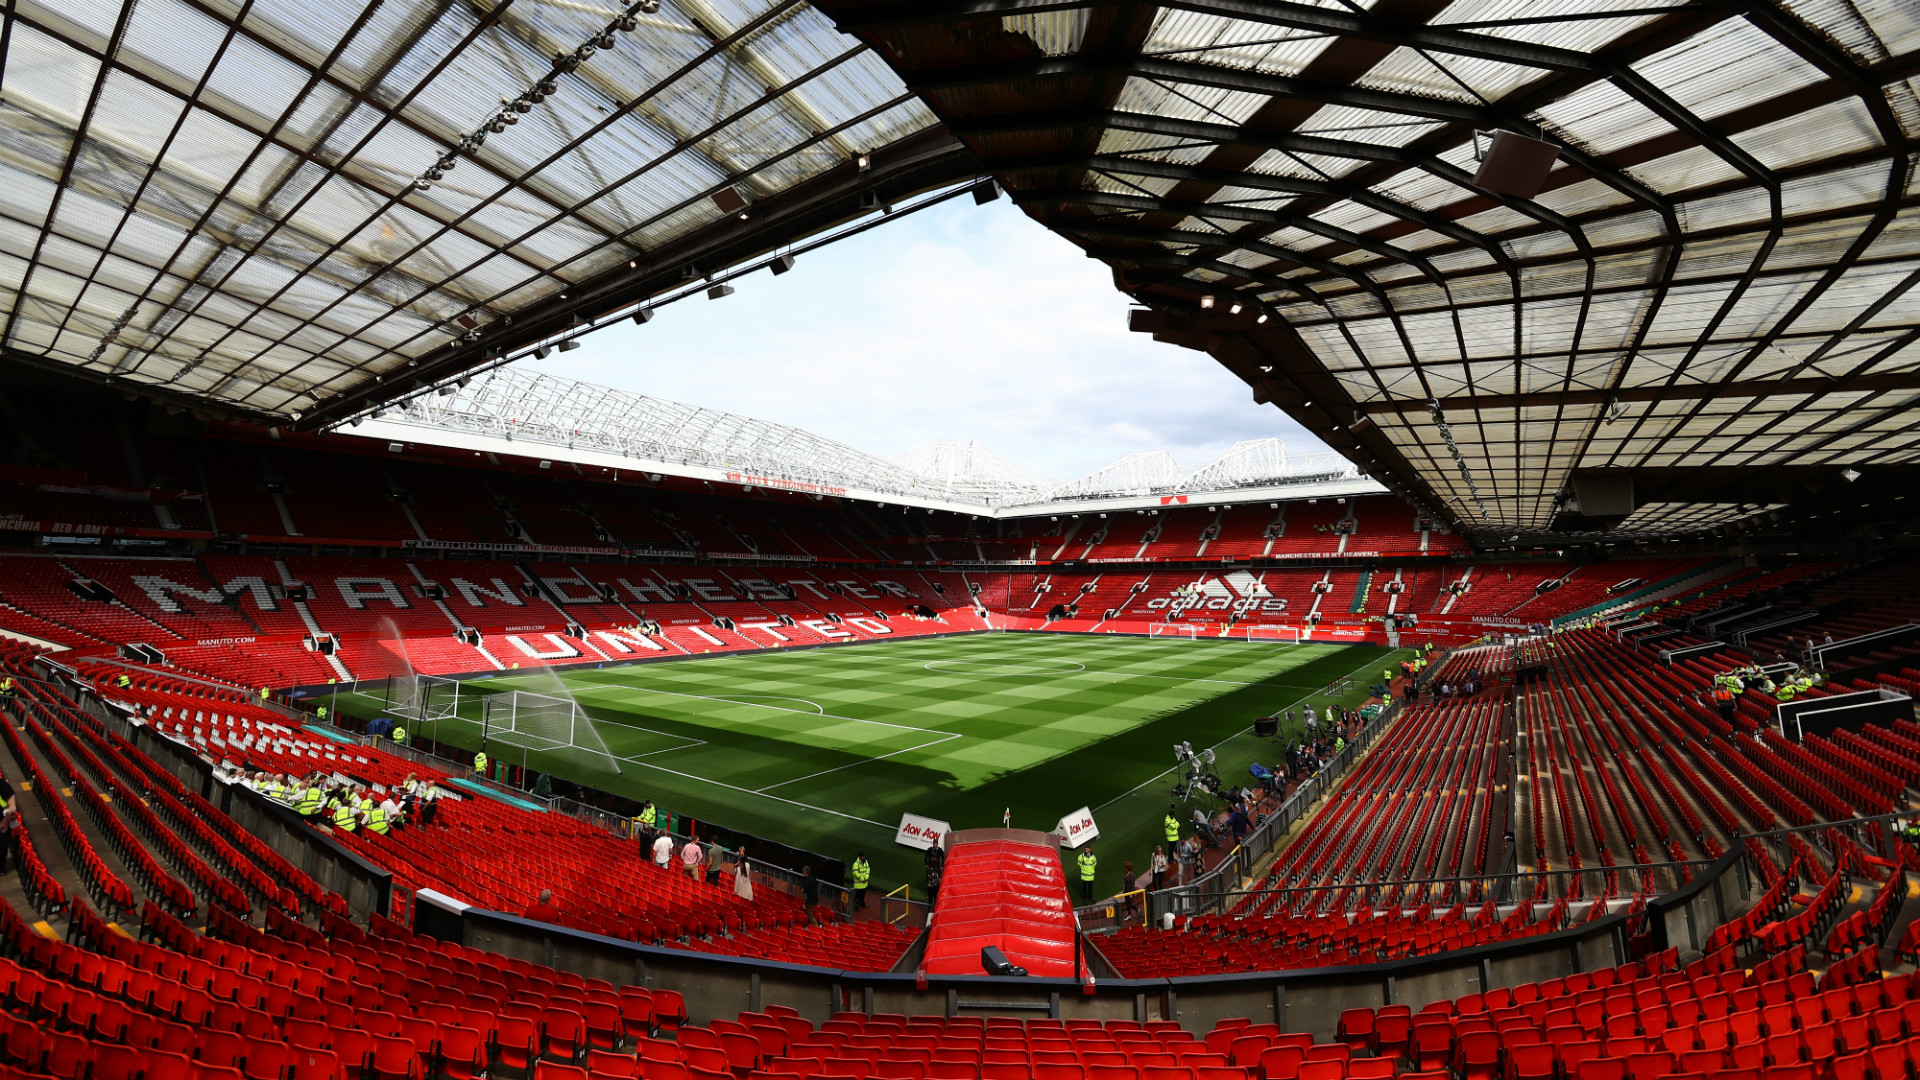 Manchester United announce quarterly revenues of £141m freeing up money for transfers